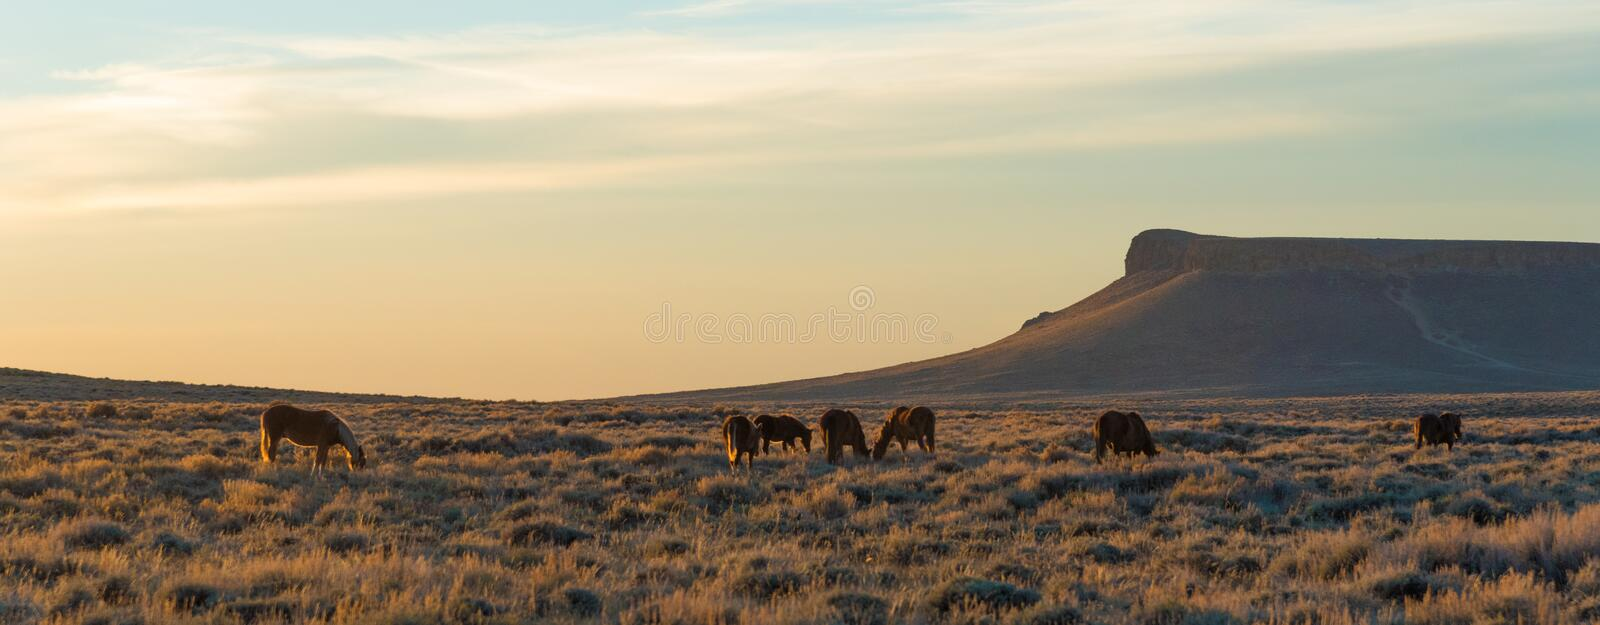 Pilote Butte, Wyoming photos stock